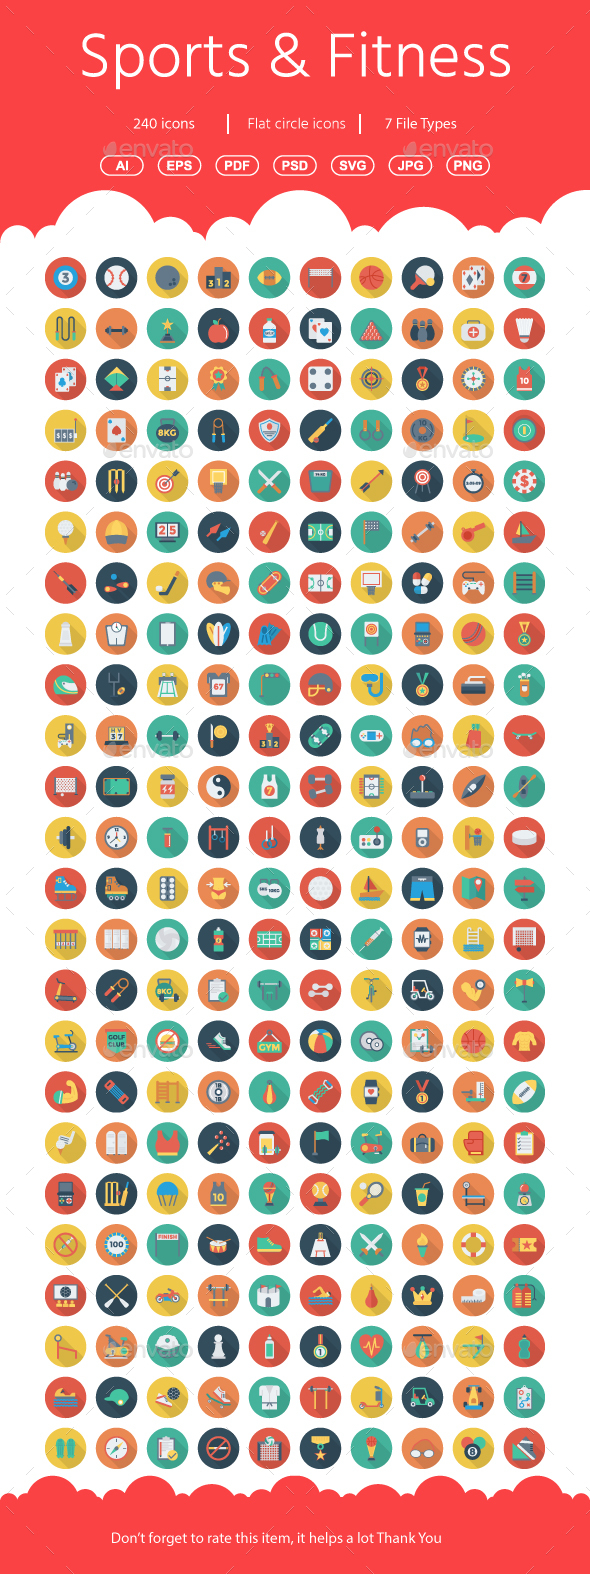 Sports and Fitness Flat Circle icons - Business Icons